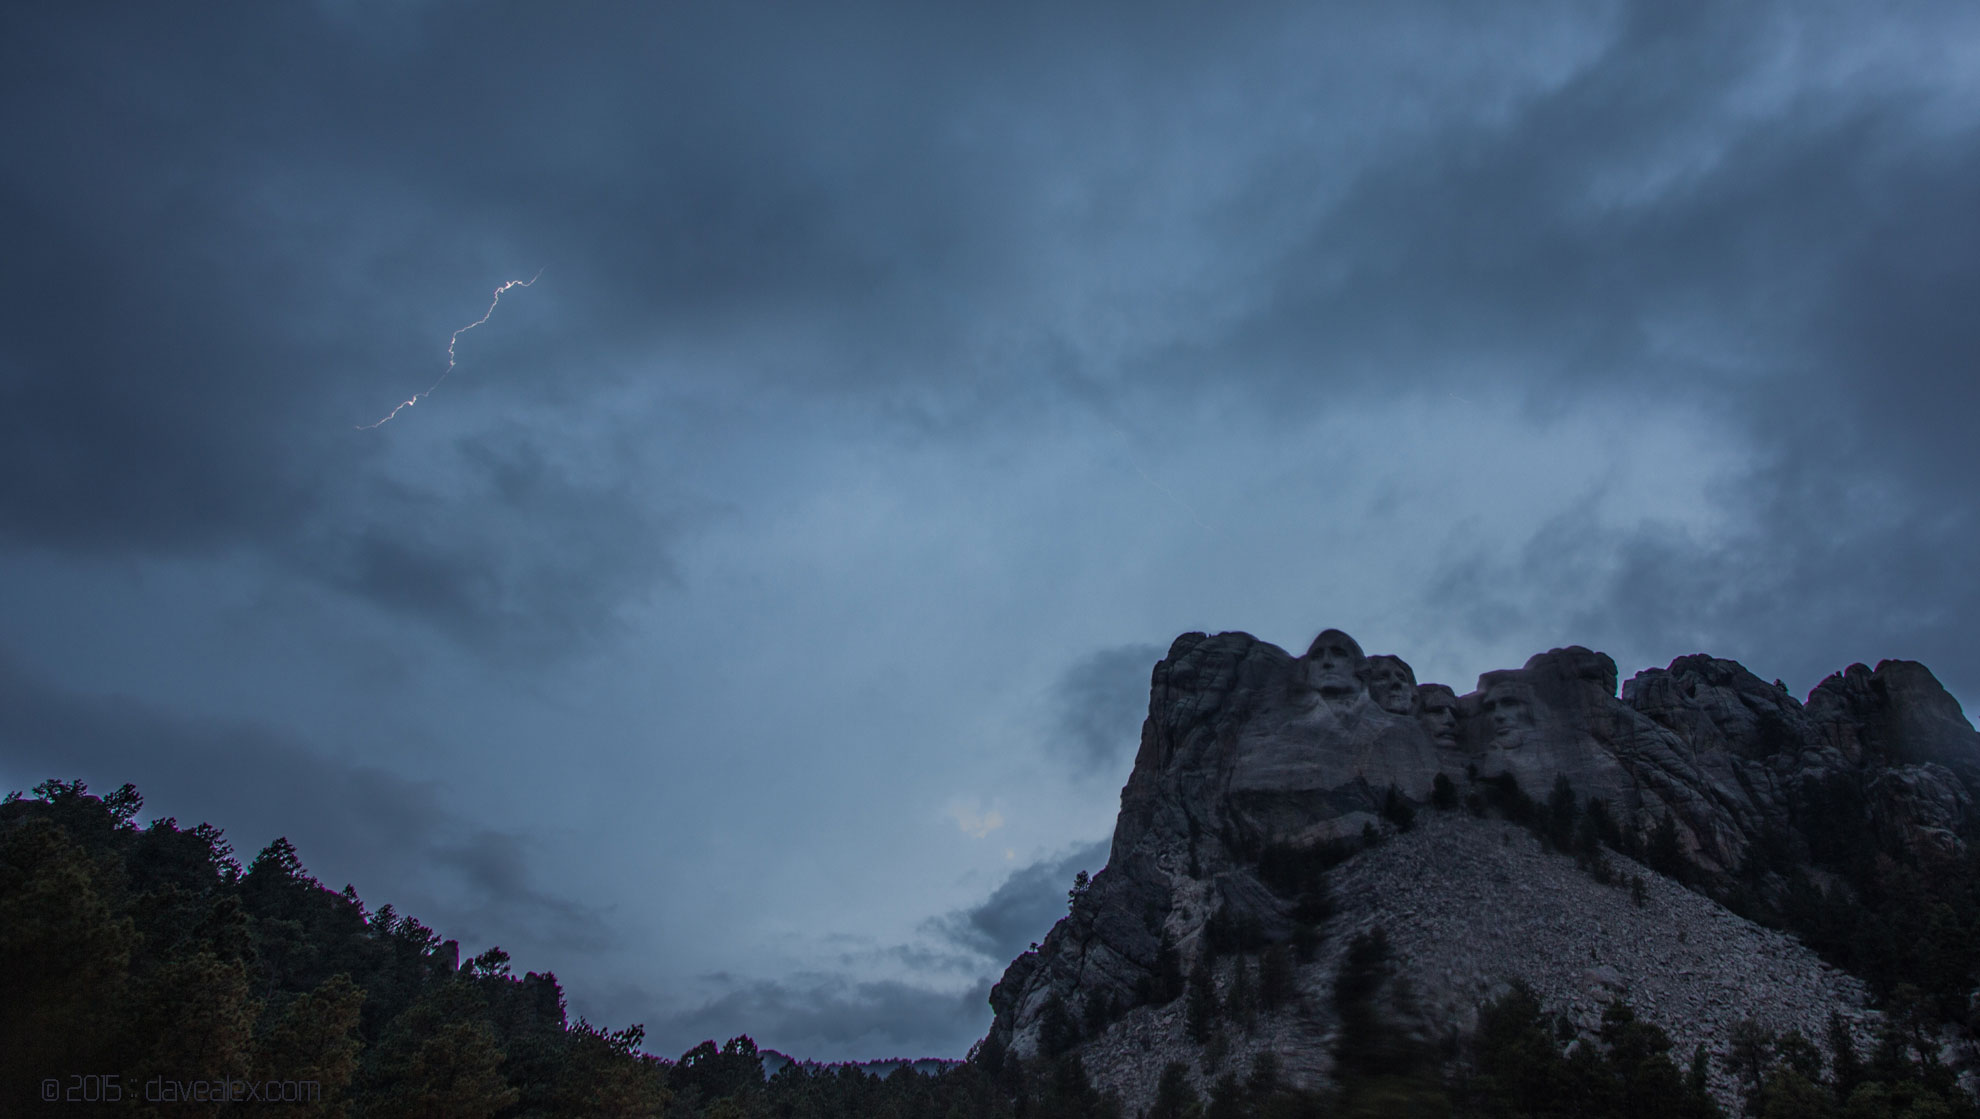 Mount Rushmore lightning